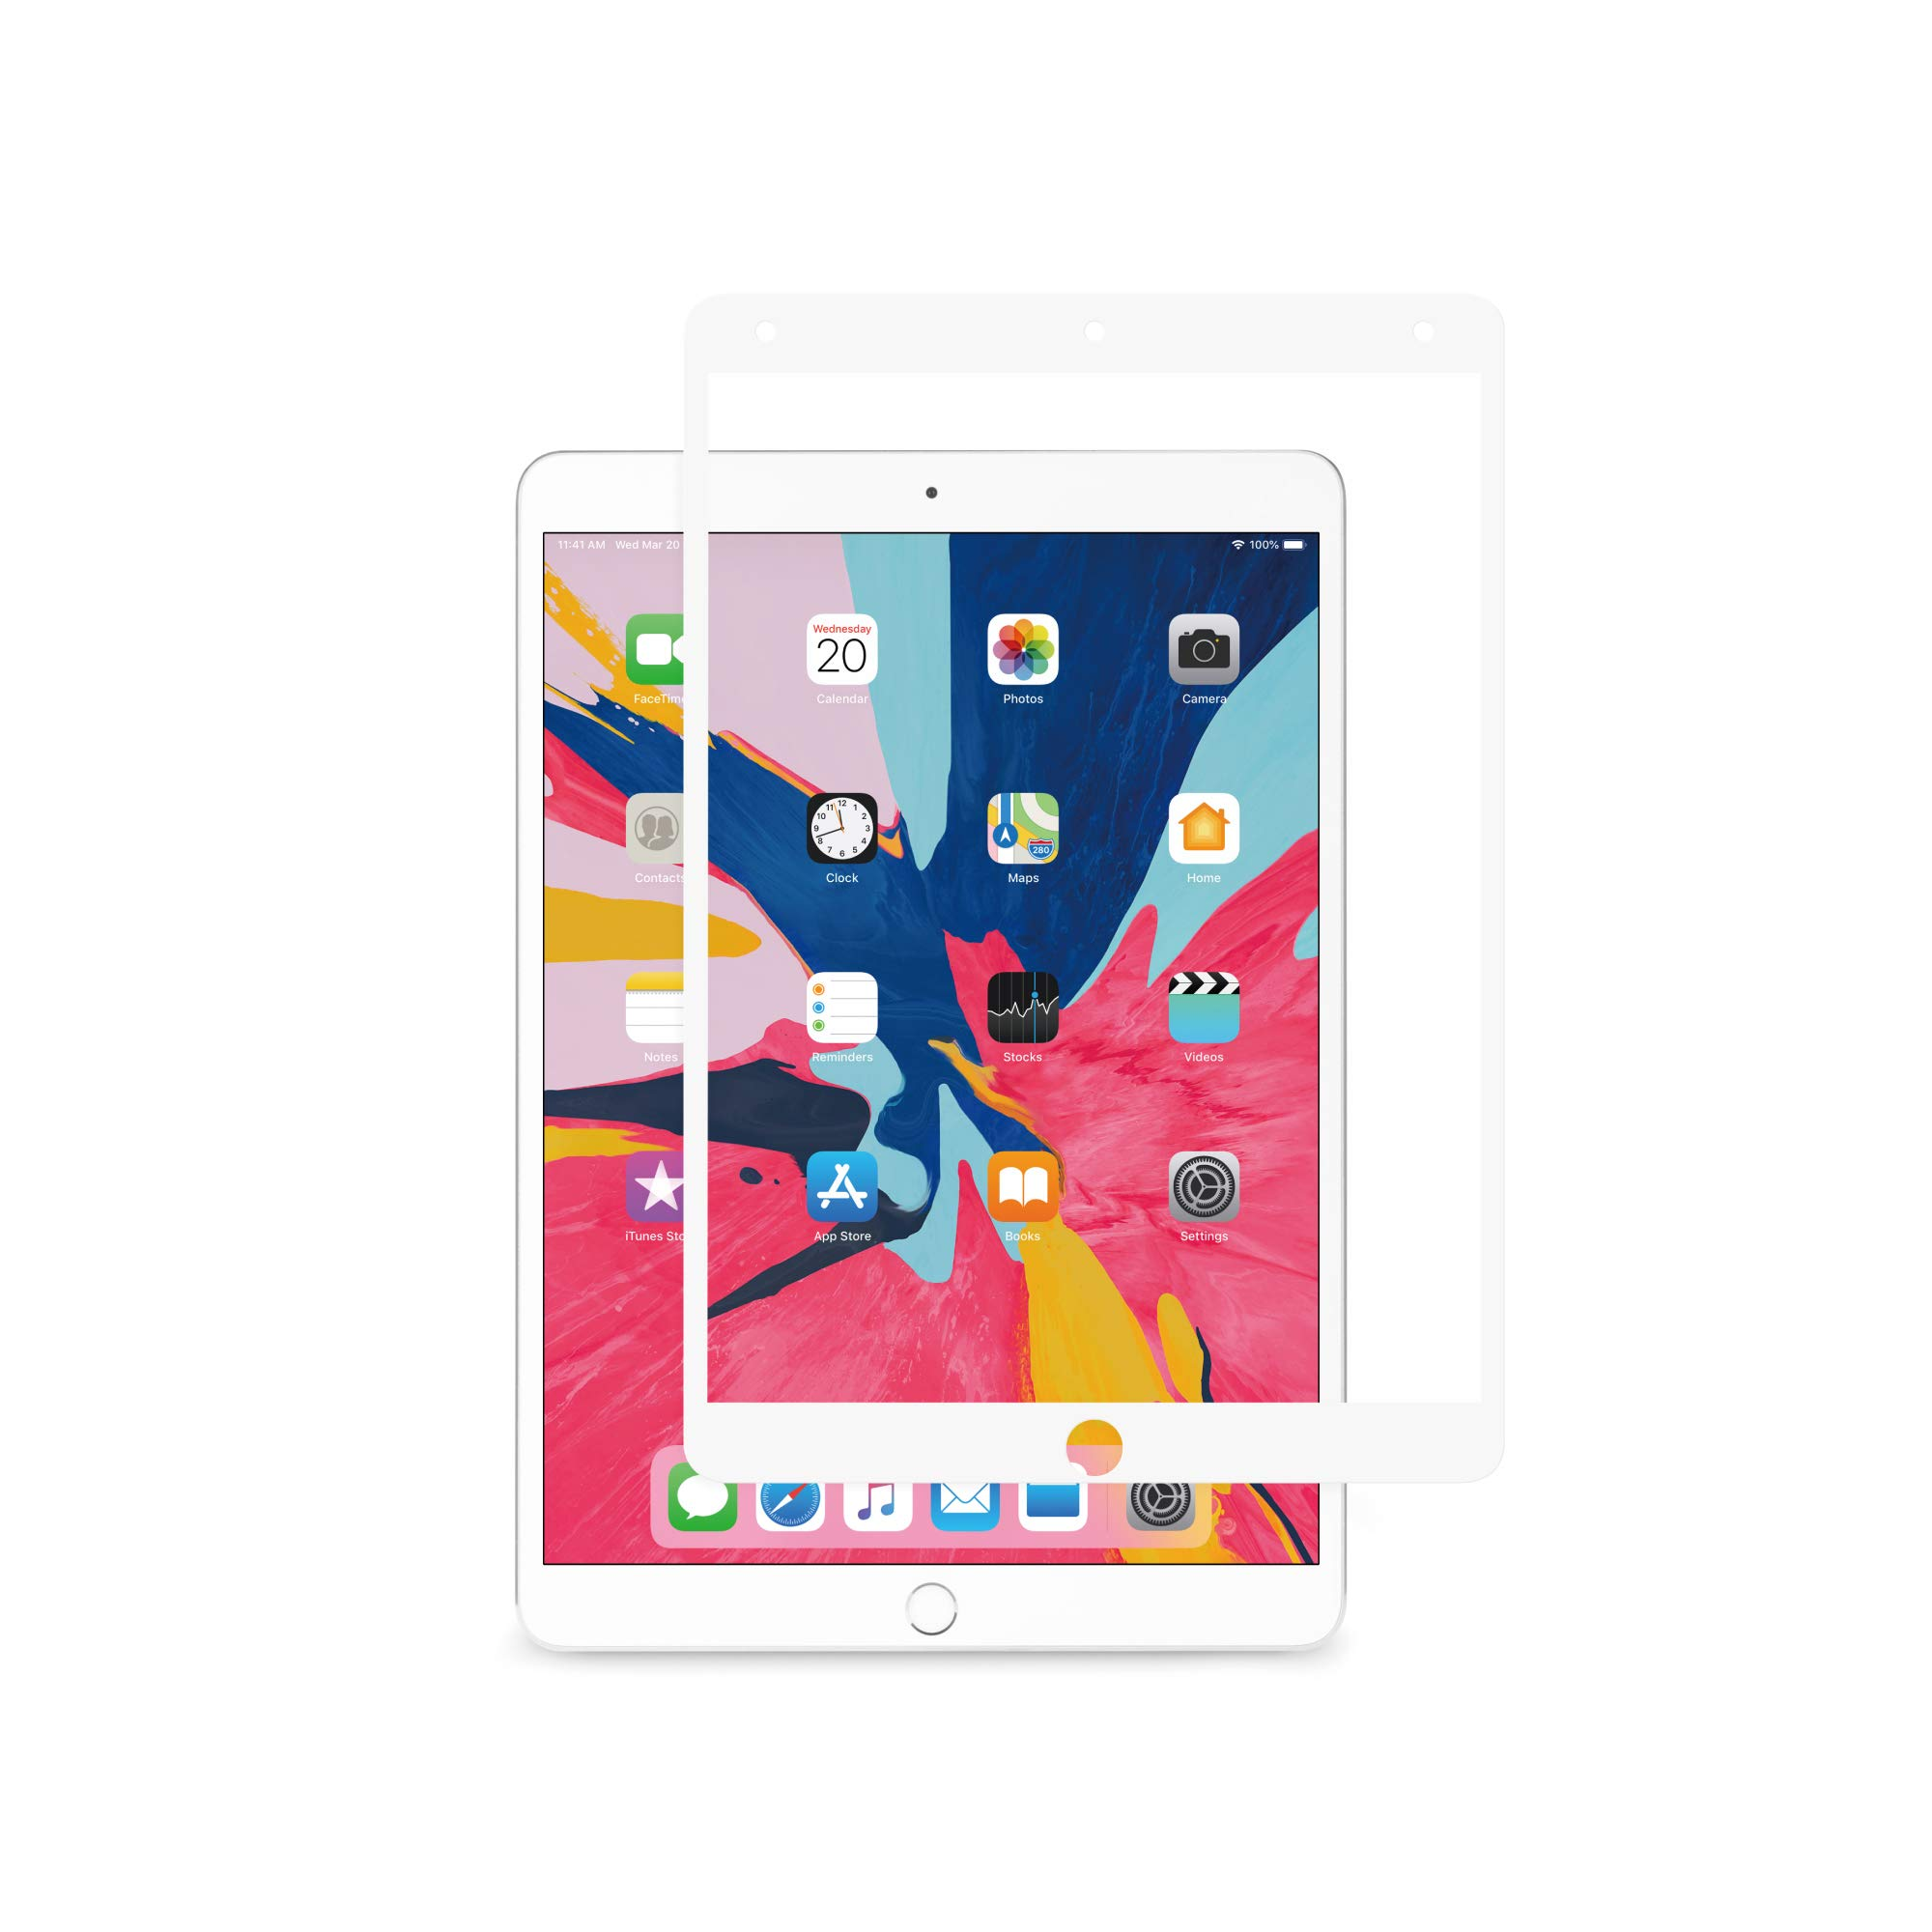 Moshi iVisor AG (Anti-Glare/Matte) Screen Protector for New iPad Air 10.5-inch / iPad Pro 10.5 inch, 100% Bubble-Free and Washable, Compatible with Apple Pencil, Washable, White